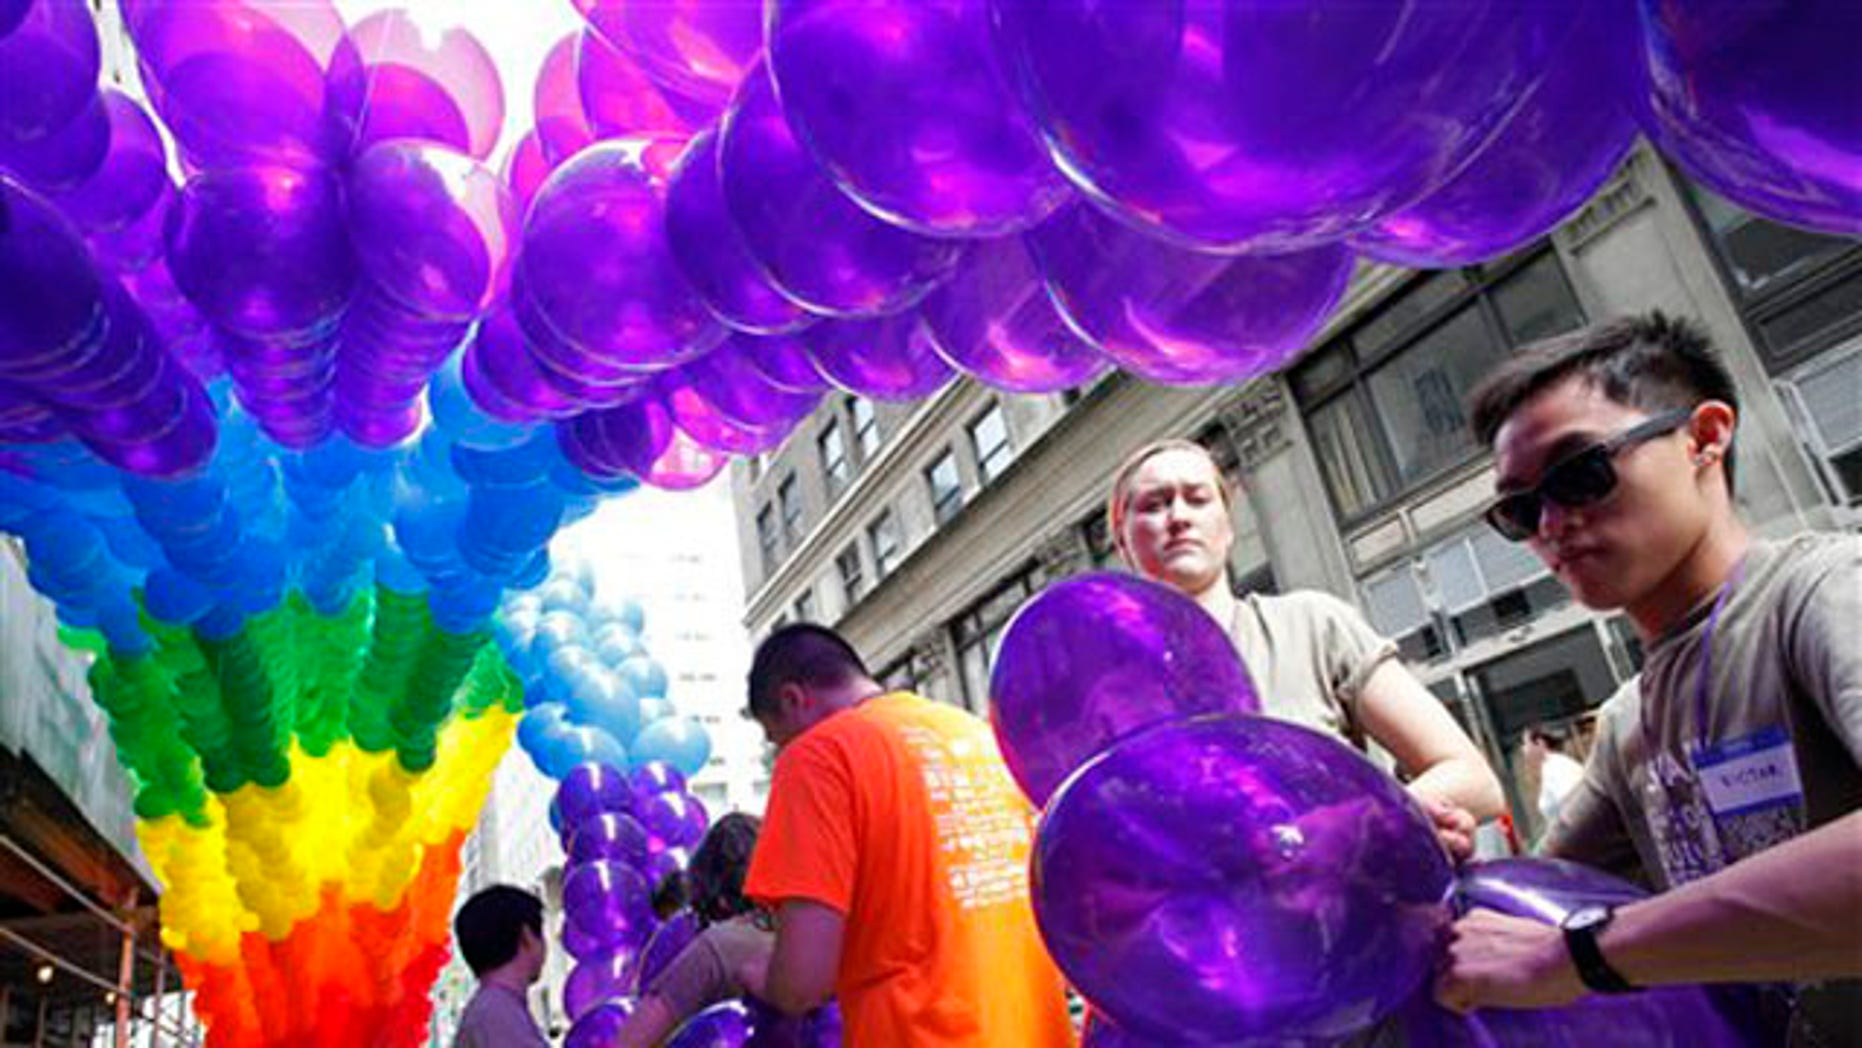 Kajsa Westman, second from right, of Stockholm, Sweden, and Victor Ng, right, of Seattle, tie balloons to a banner in preparation for the annual Gay Pride parade, Sunday, June 26, 2011 in New York. One of the world's oldest and largest gay pride parades was expected to become a victory celebration Sunday after New York's historic decision to legalize same-sex marriage.  The law signed by Gov. Andrew Cuomo on Friday doesn't take effect for 30 days. (AP Photo/Mark Lennihan)